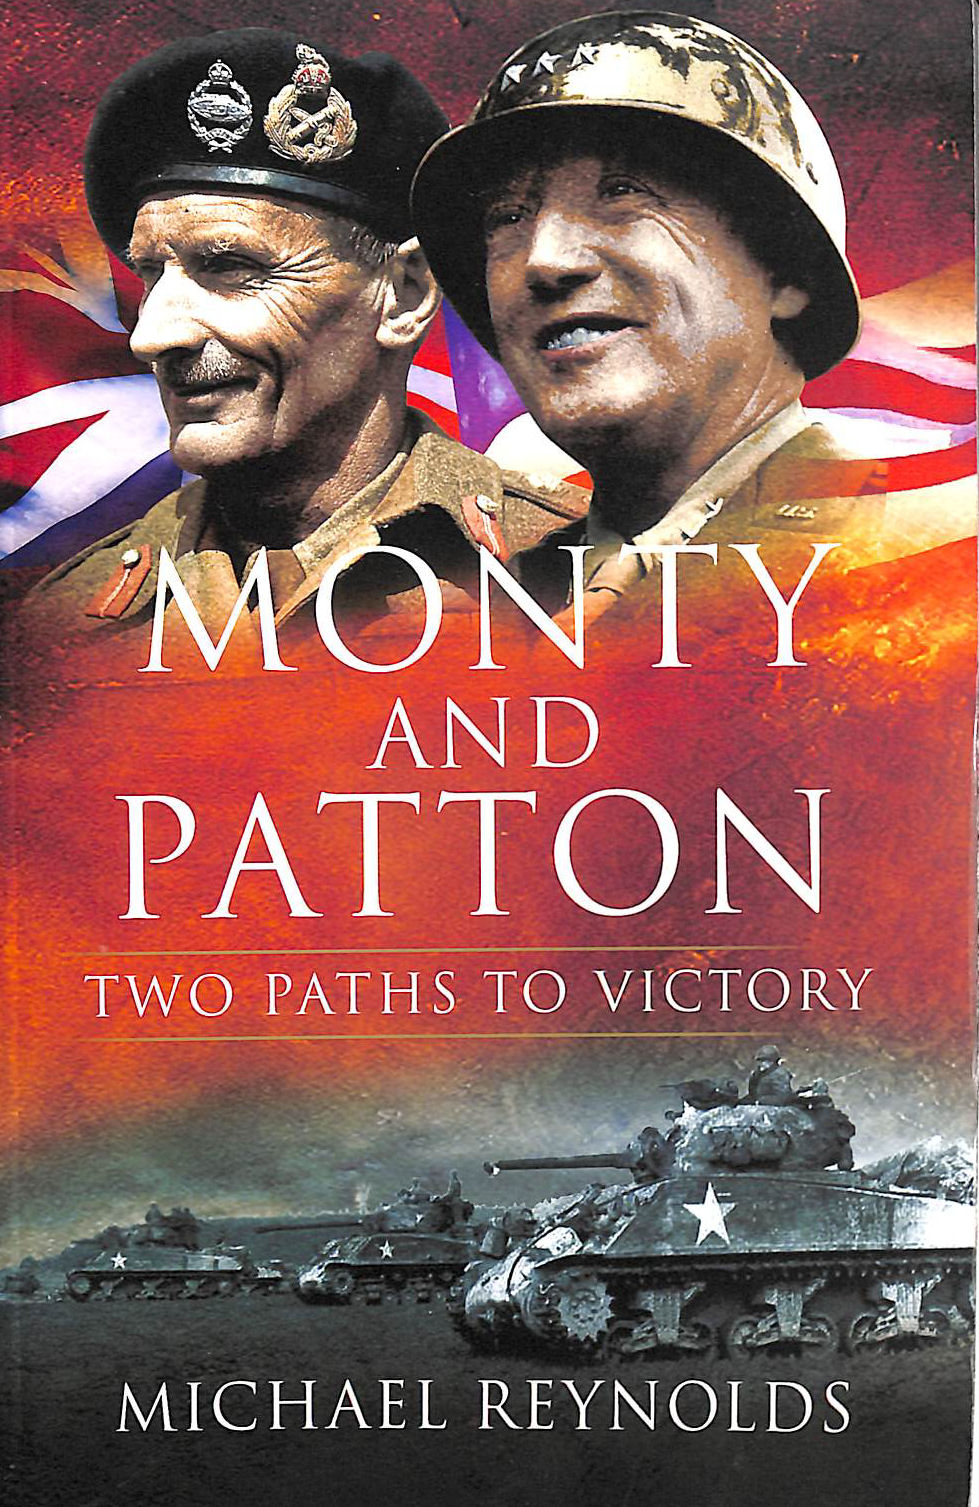 Image for Monty and Patton: Two Paths to Victory